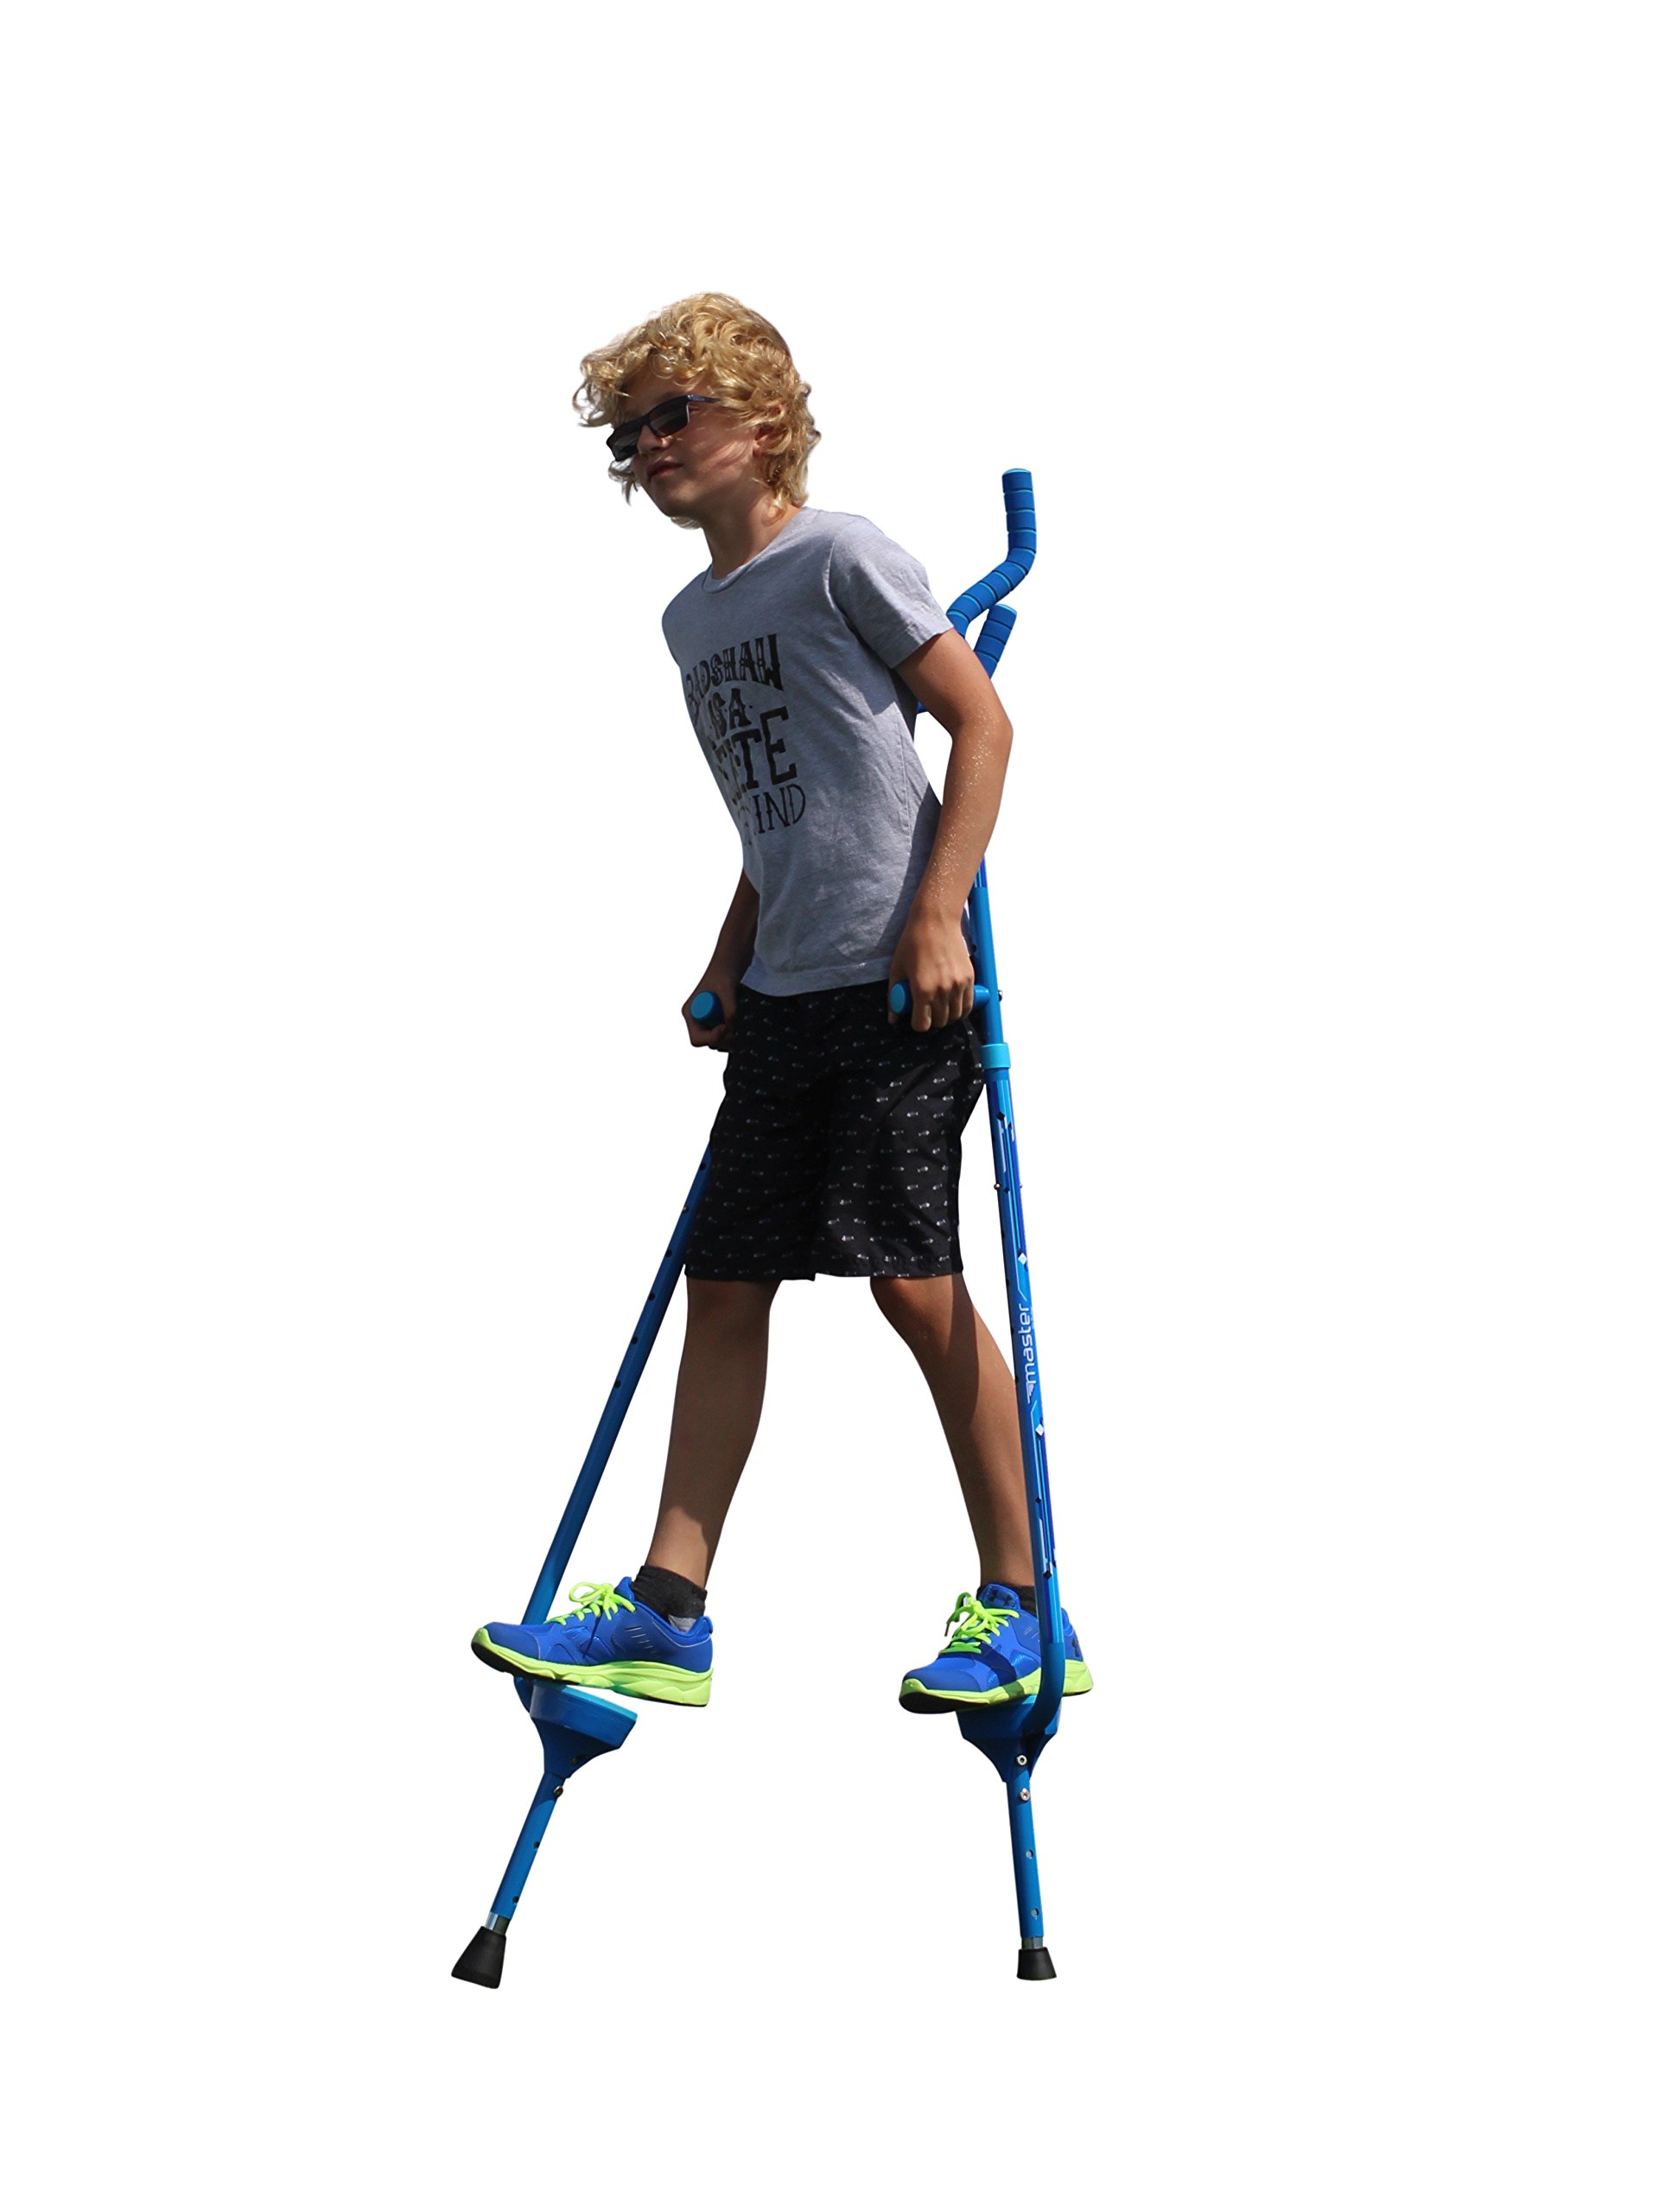 Flybar Master Walking Stilts for Kids Ages 10 +, Weights Up to 200 Lbs - Adjustable Height with Foam Handles & Shoulder Rests - Fun Outdoor Toys for Girls & Boys by Flybar